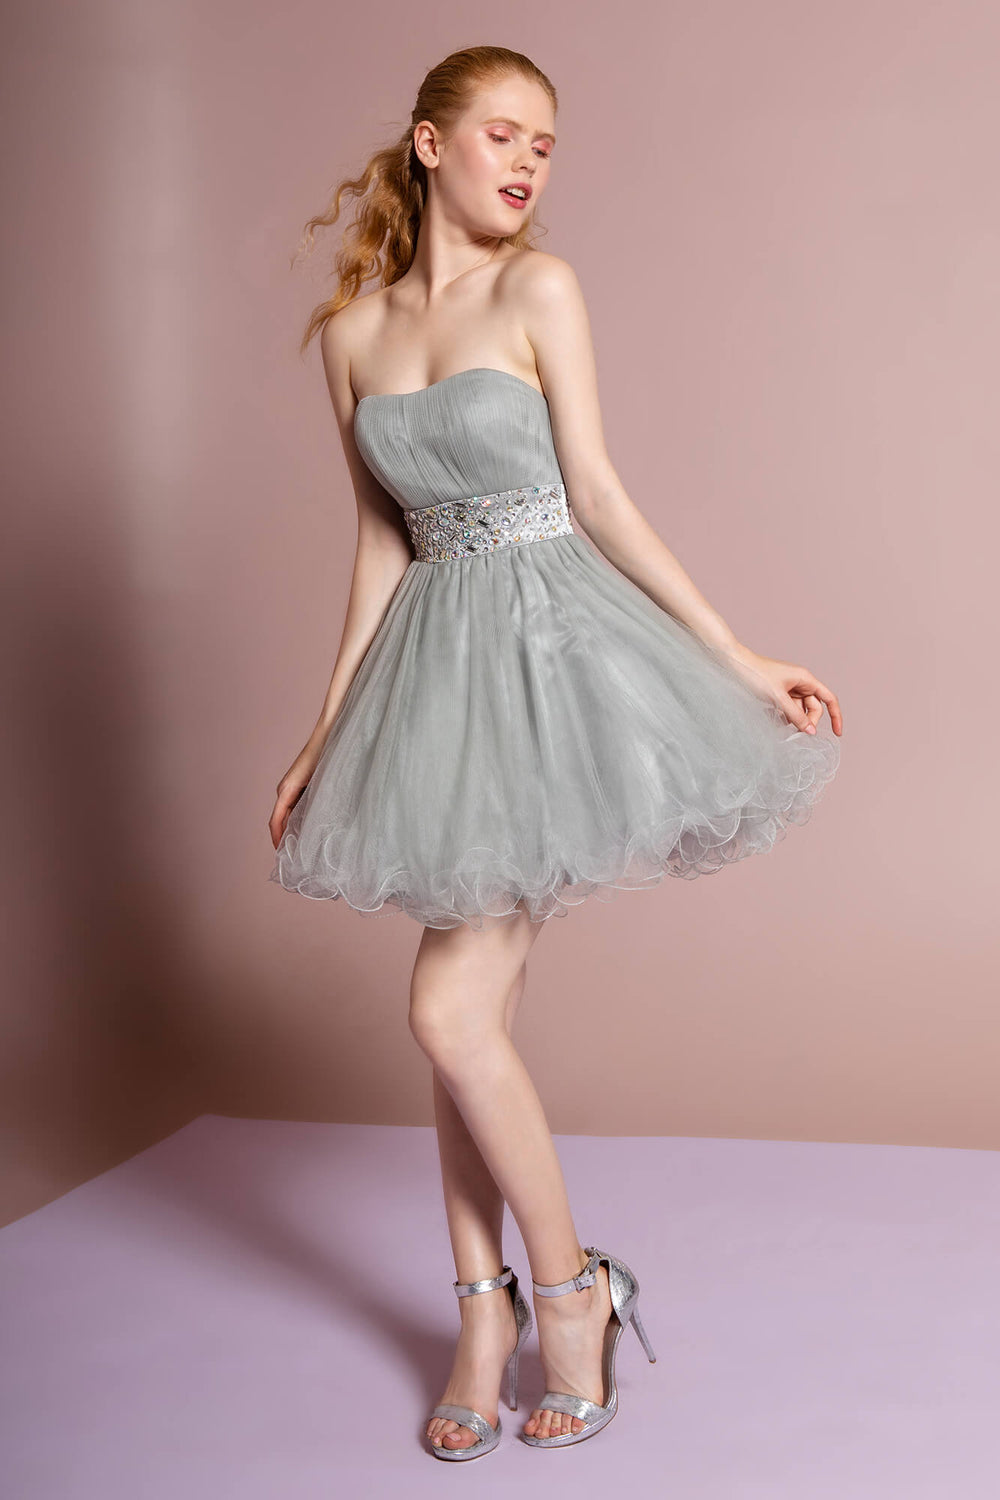 Strapless Sweetheart Prom Short Dress - The Dress Outlet Silver